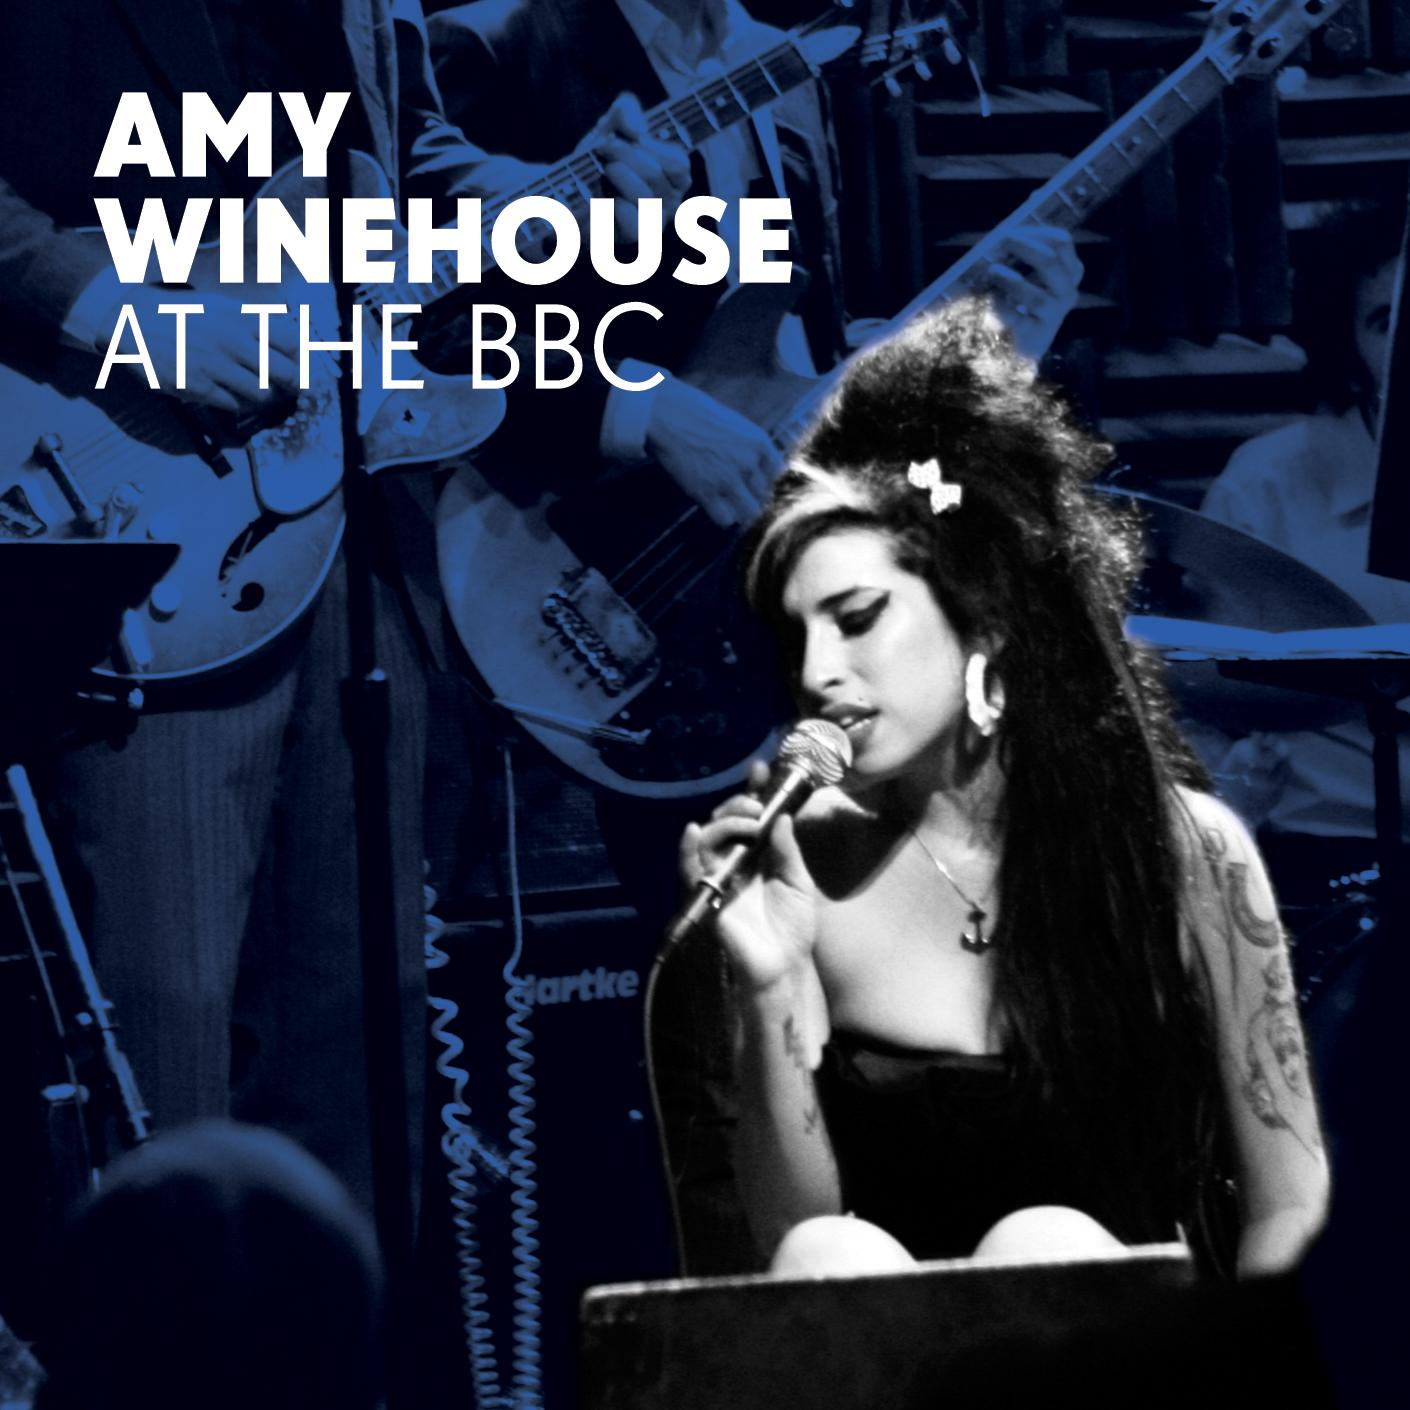 Amy Winehouse - Amy Winehouse At The BBC (2012) [Multi]